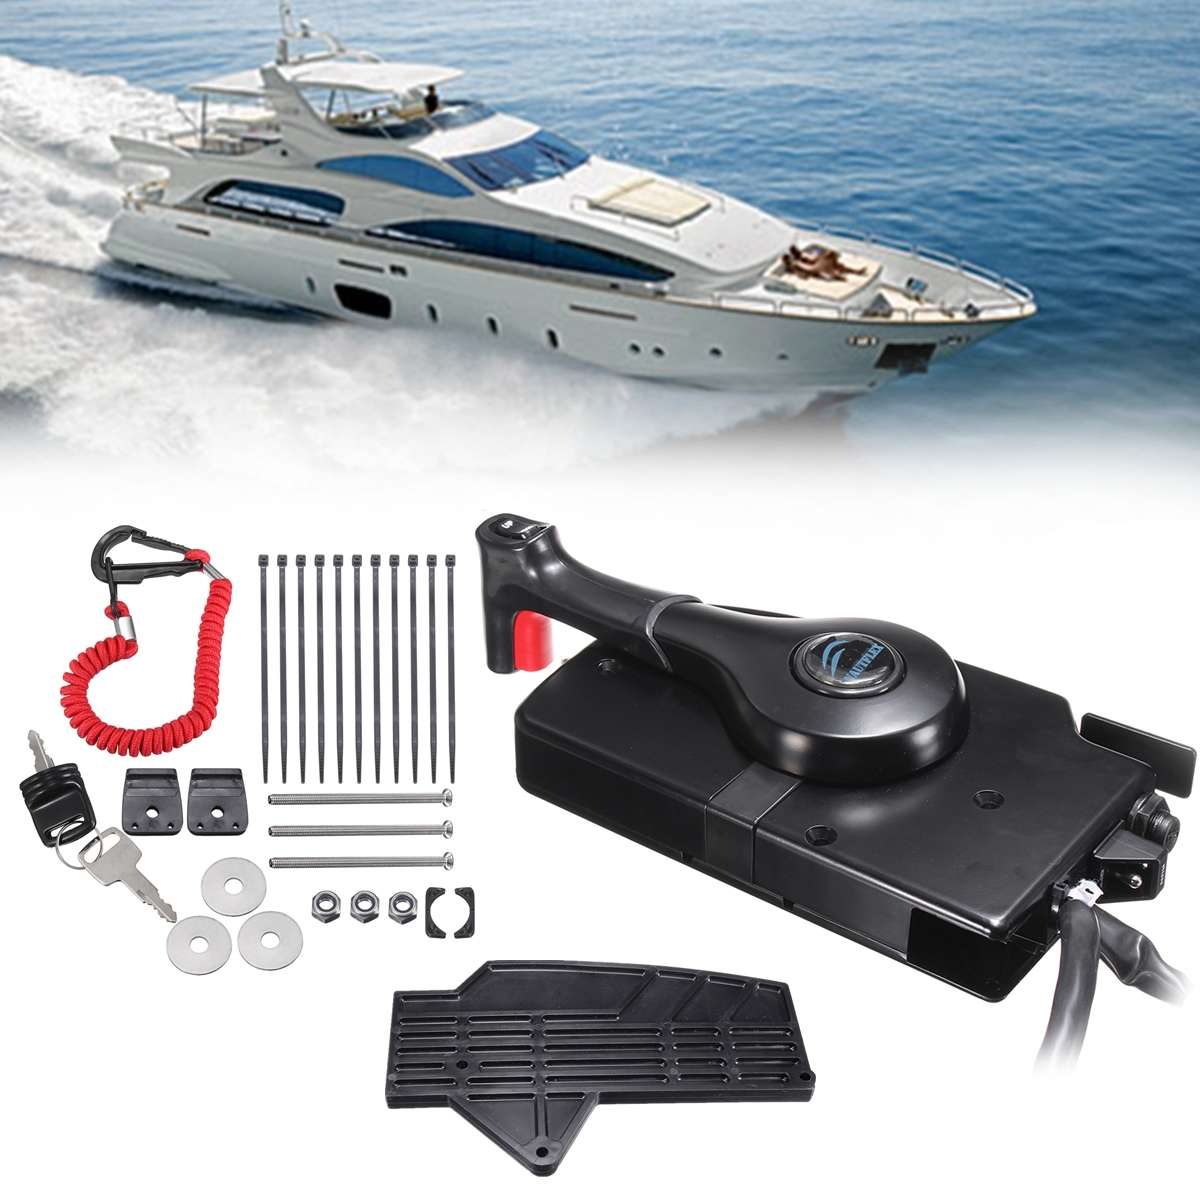 Outboard Engine Side Mount With 14 Pin Cable Boat Remote Control Box Up/Down switch Include Forward/reverse Lever for Mercury